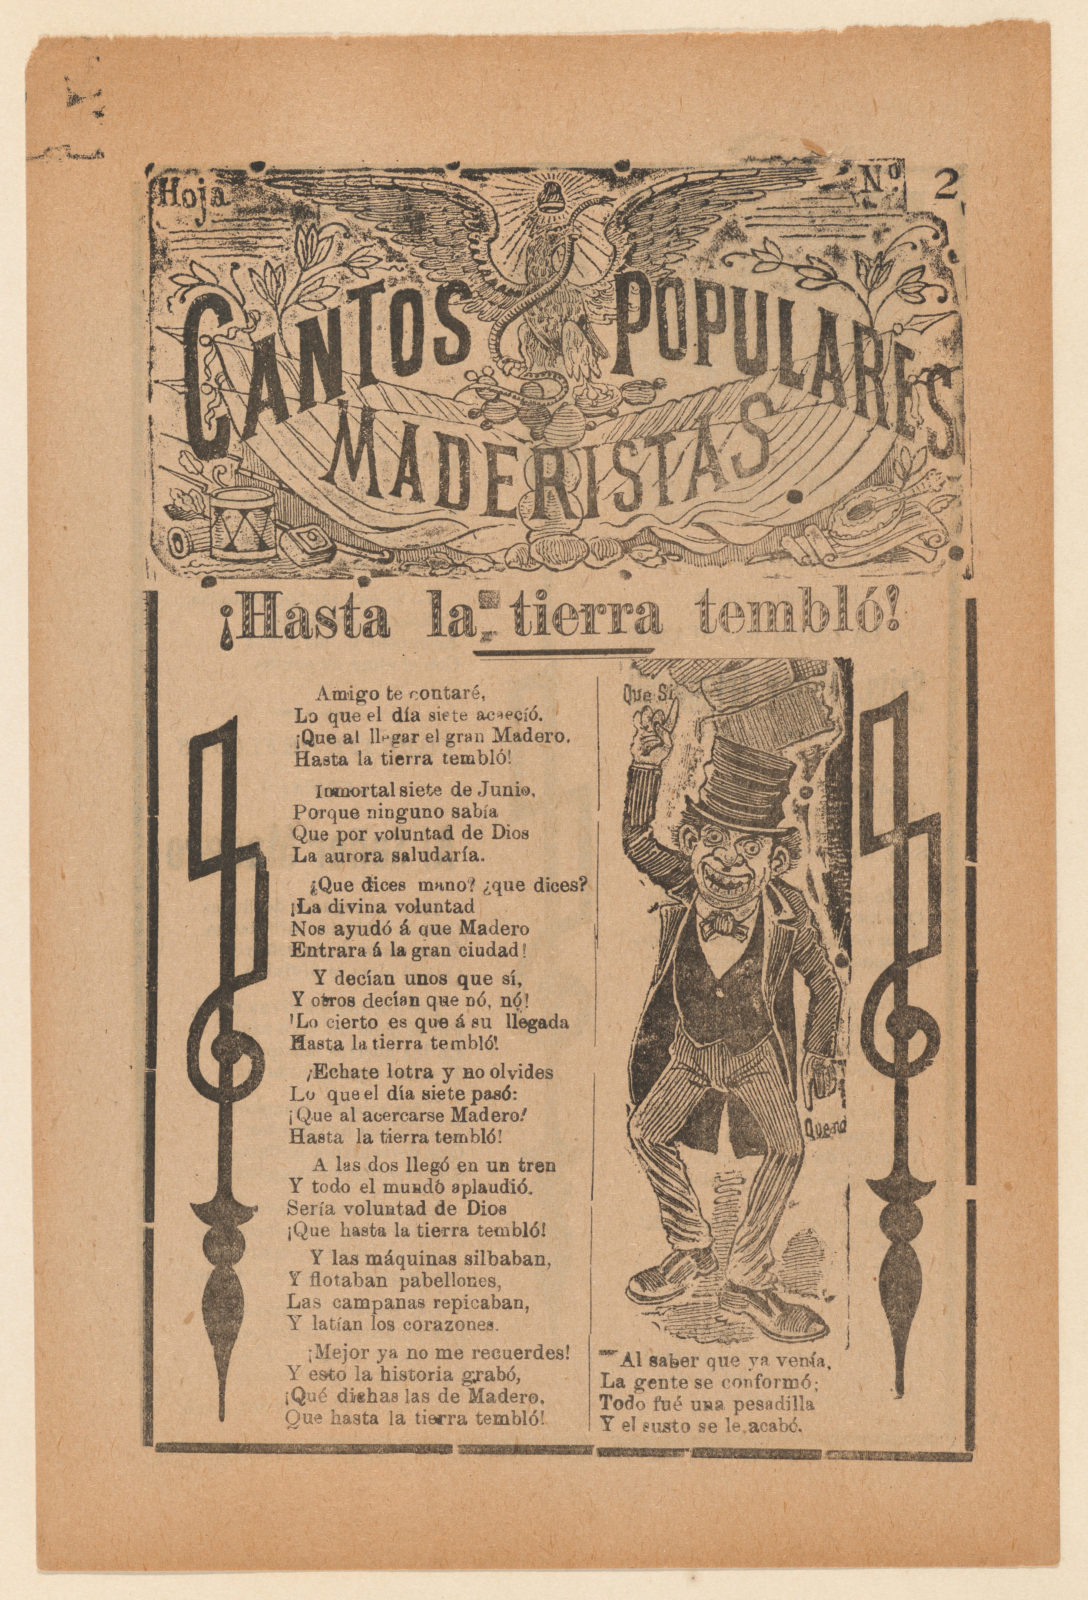 Broadsheet celebrating one of the founders of the Mexican Revolution, Francisco Madero, shown in a suit and top hat pointing to the phrases 'Que Si' and 'Que No'